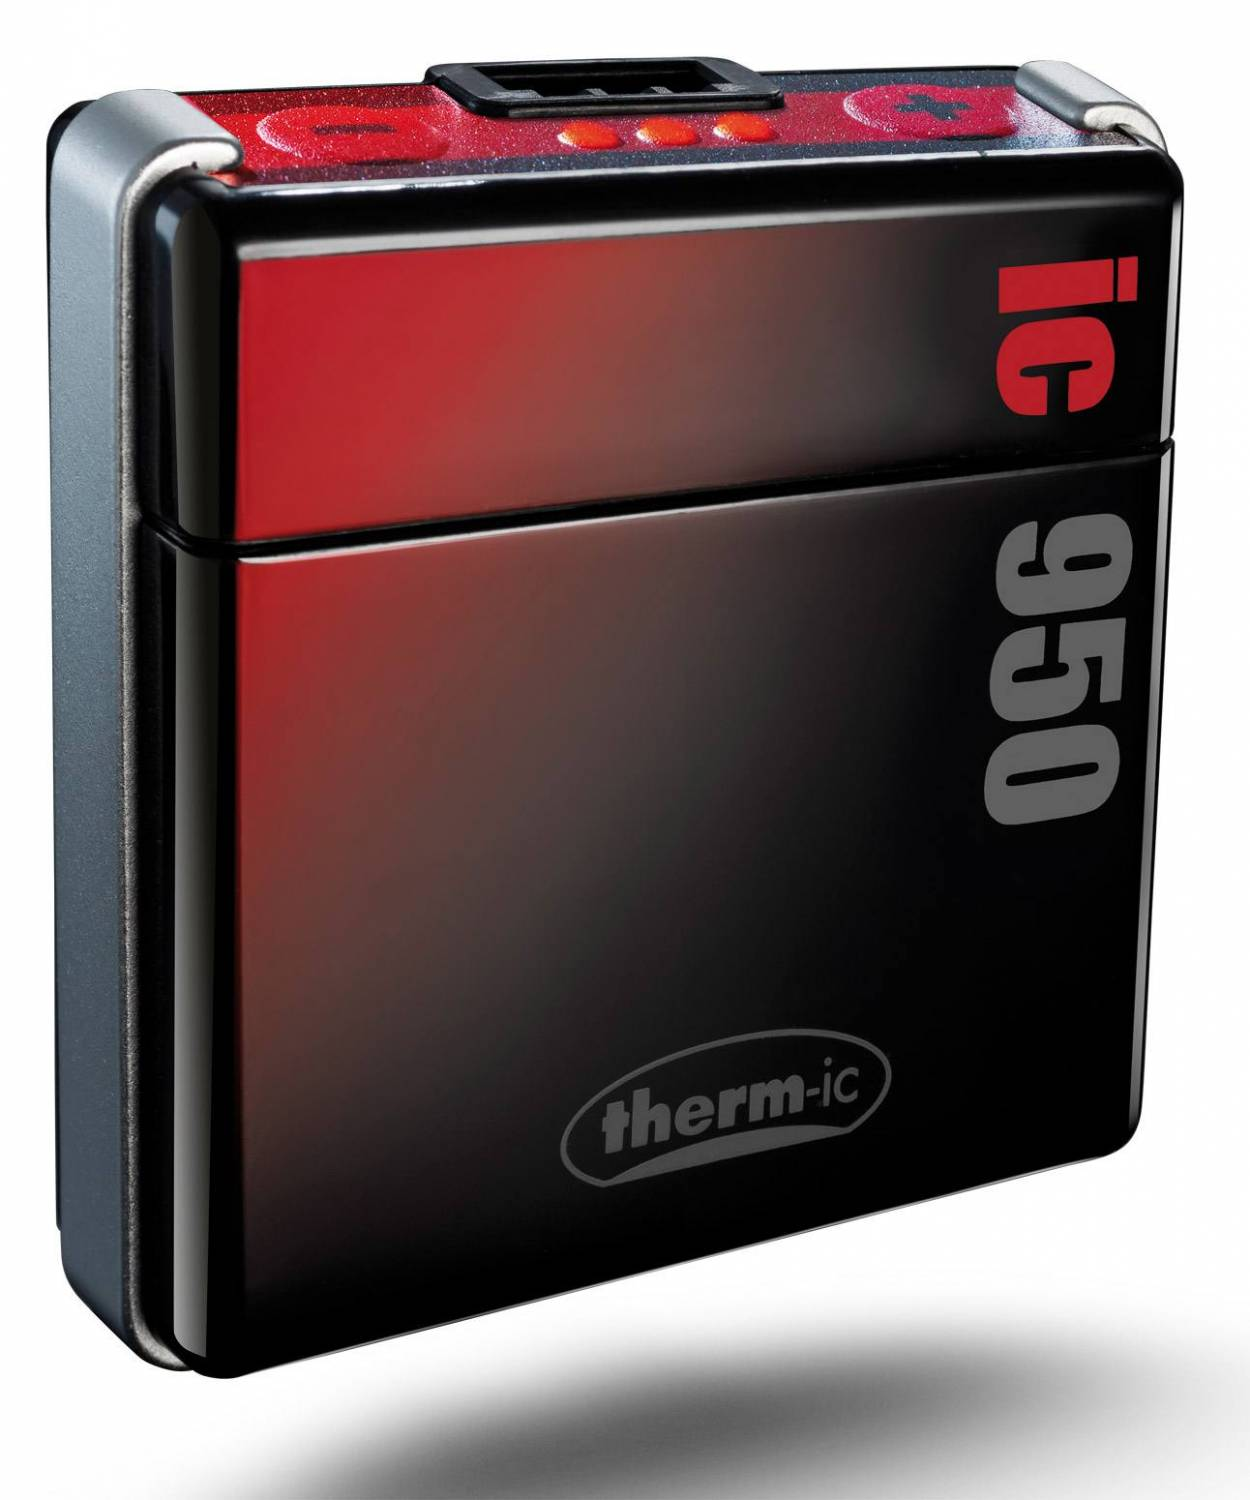 Terpe Angebote Therm-ic SmartPack ic 950 (Farbe: schwarz/rot/silber (EU))